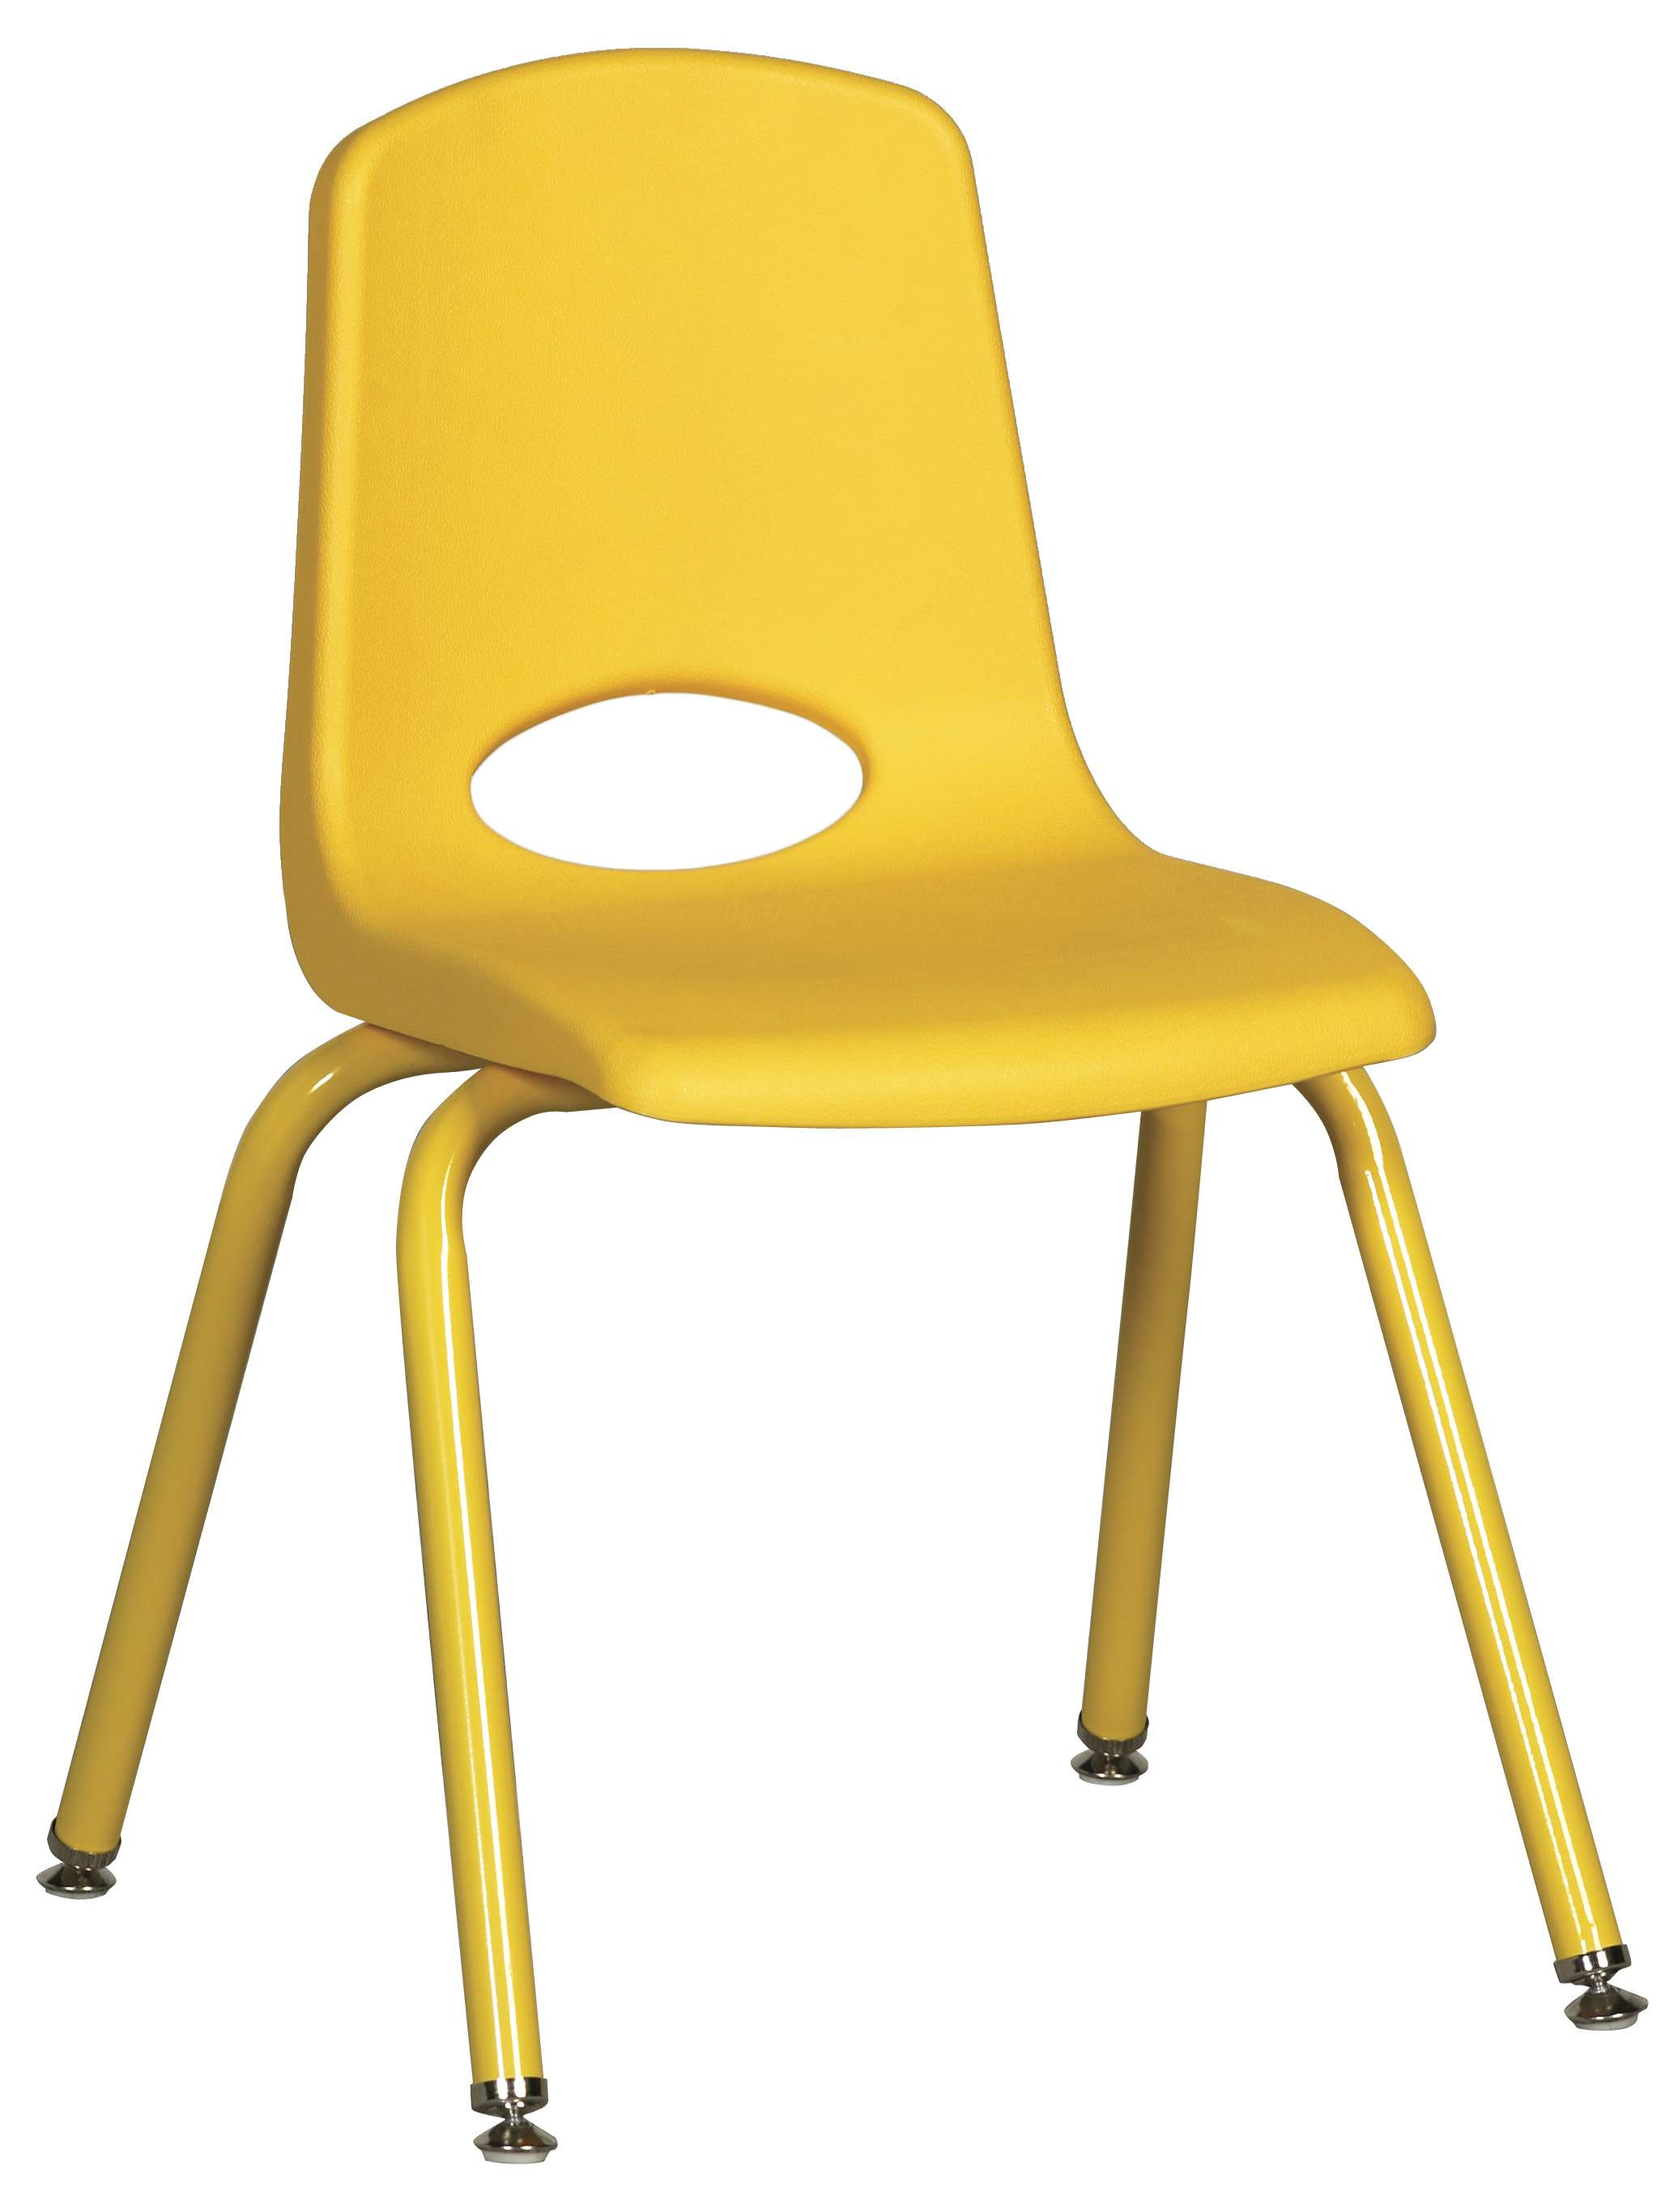 """Yellow 16"""" Stacking Chairs with Matching Legs - Set of 6"""